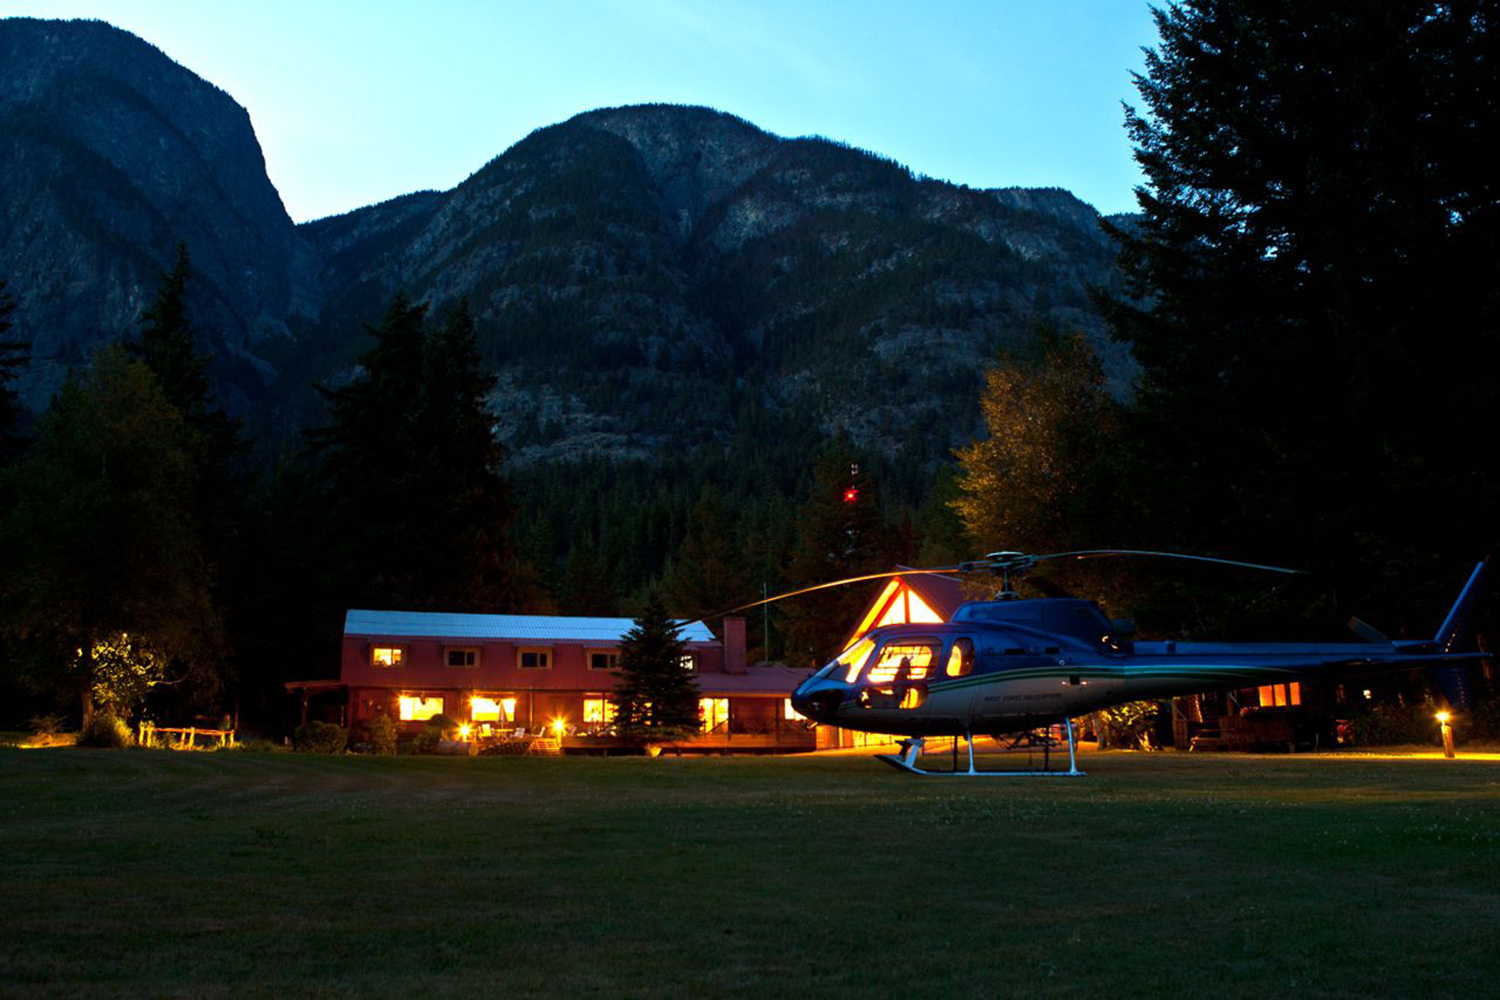 Total Heliski Corporate Heli Ski Events